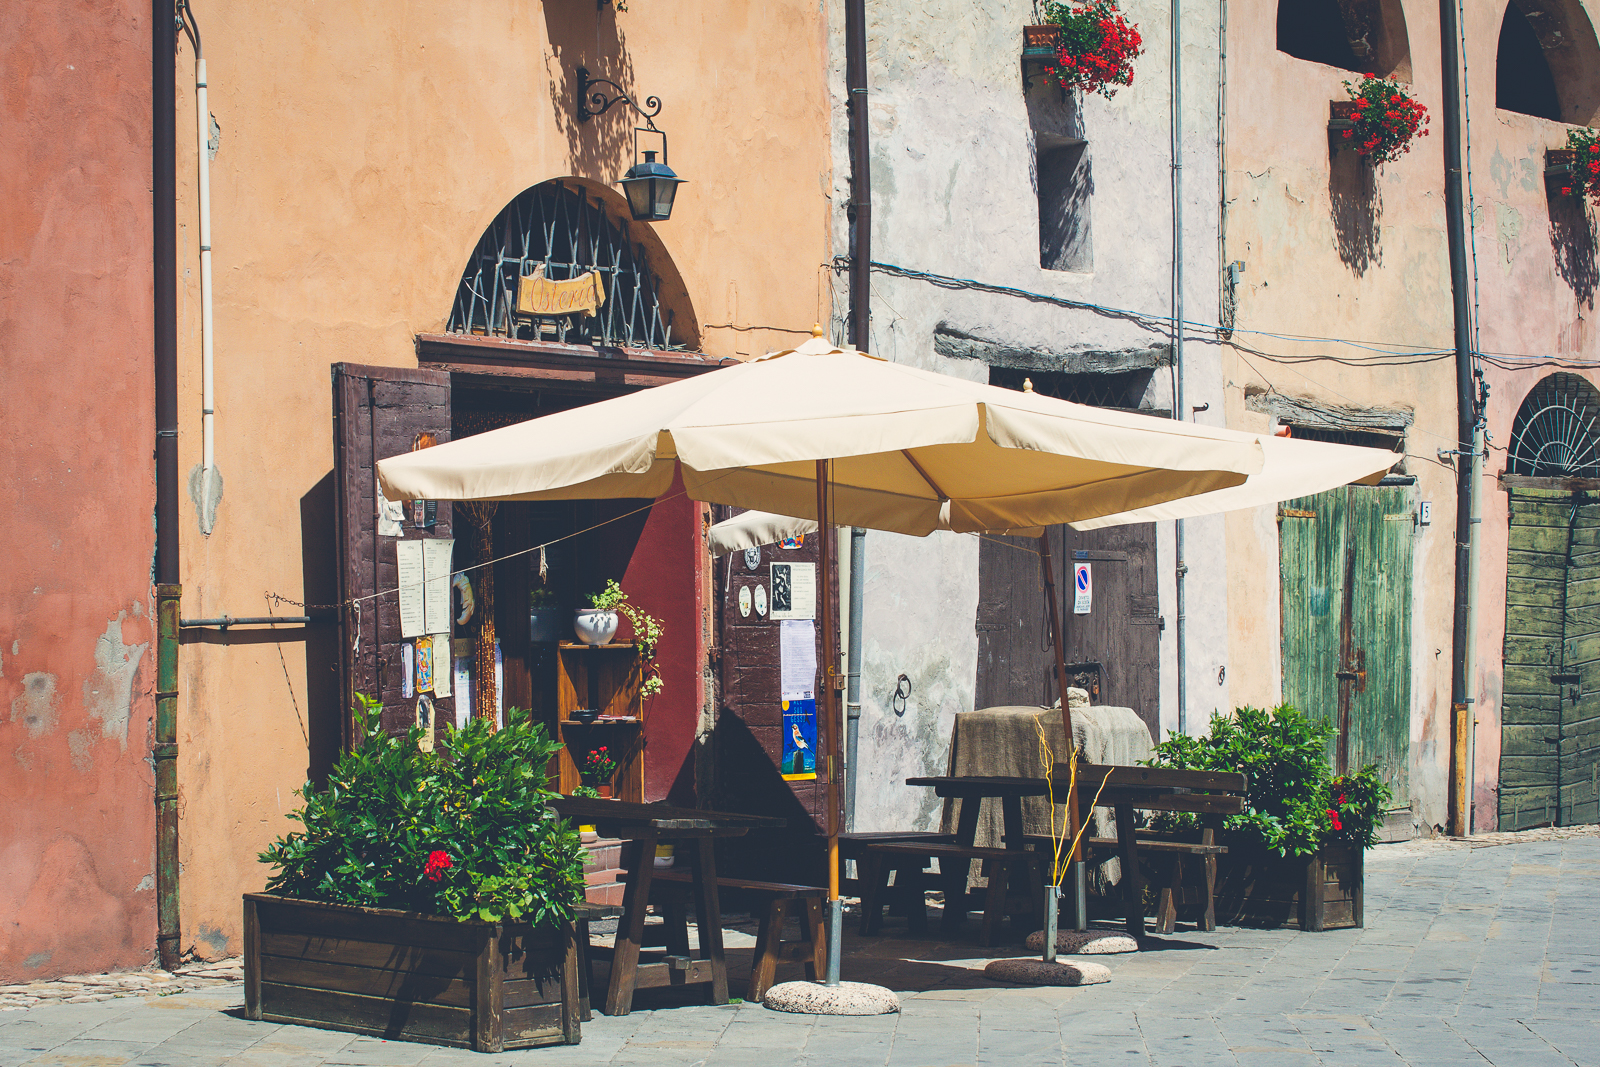 Resturant on Piazza Marconi